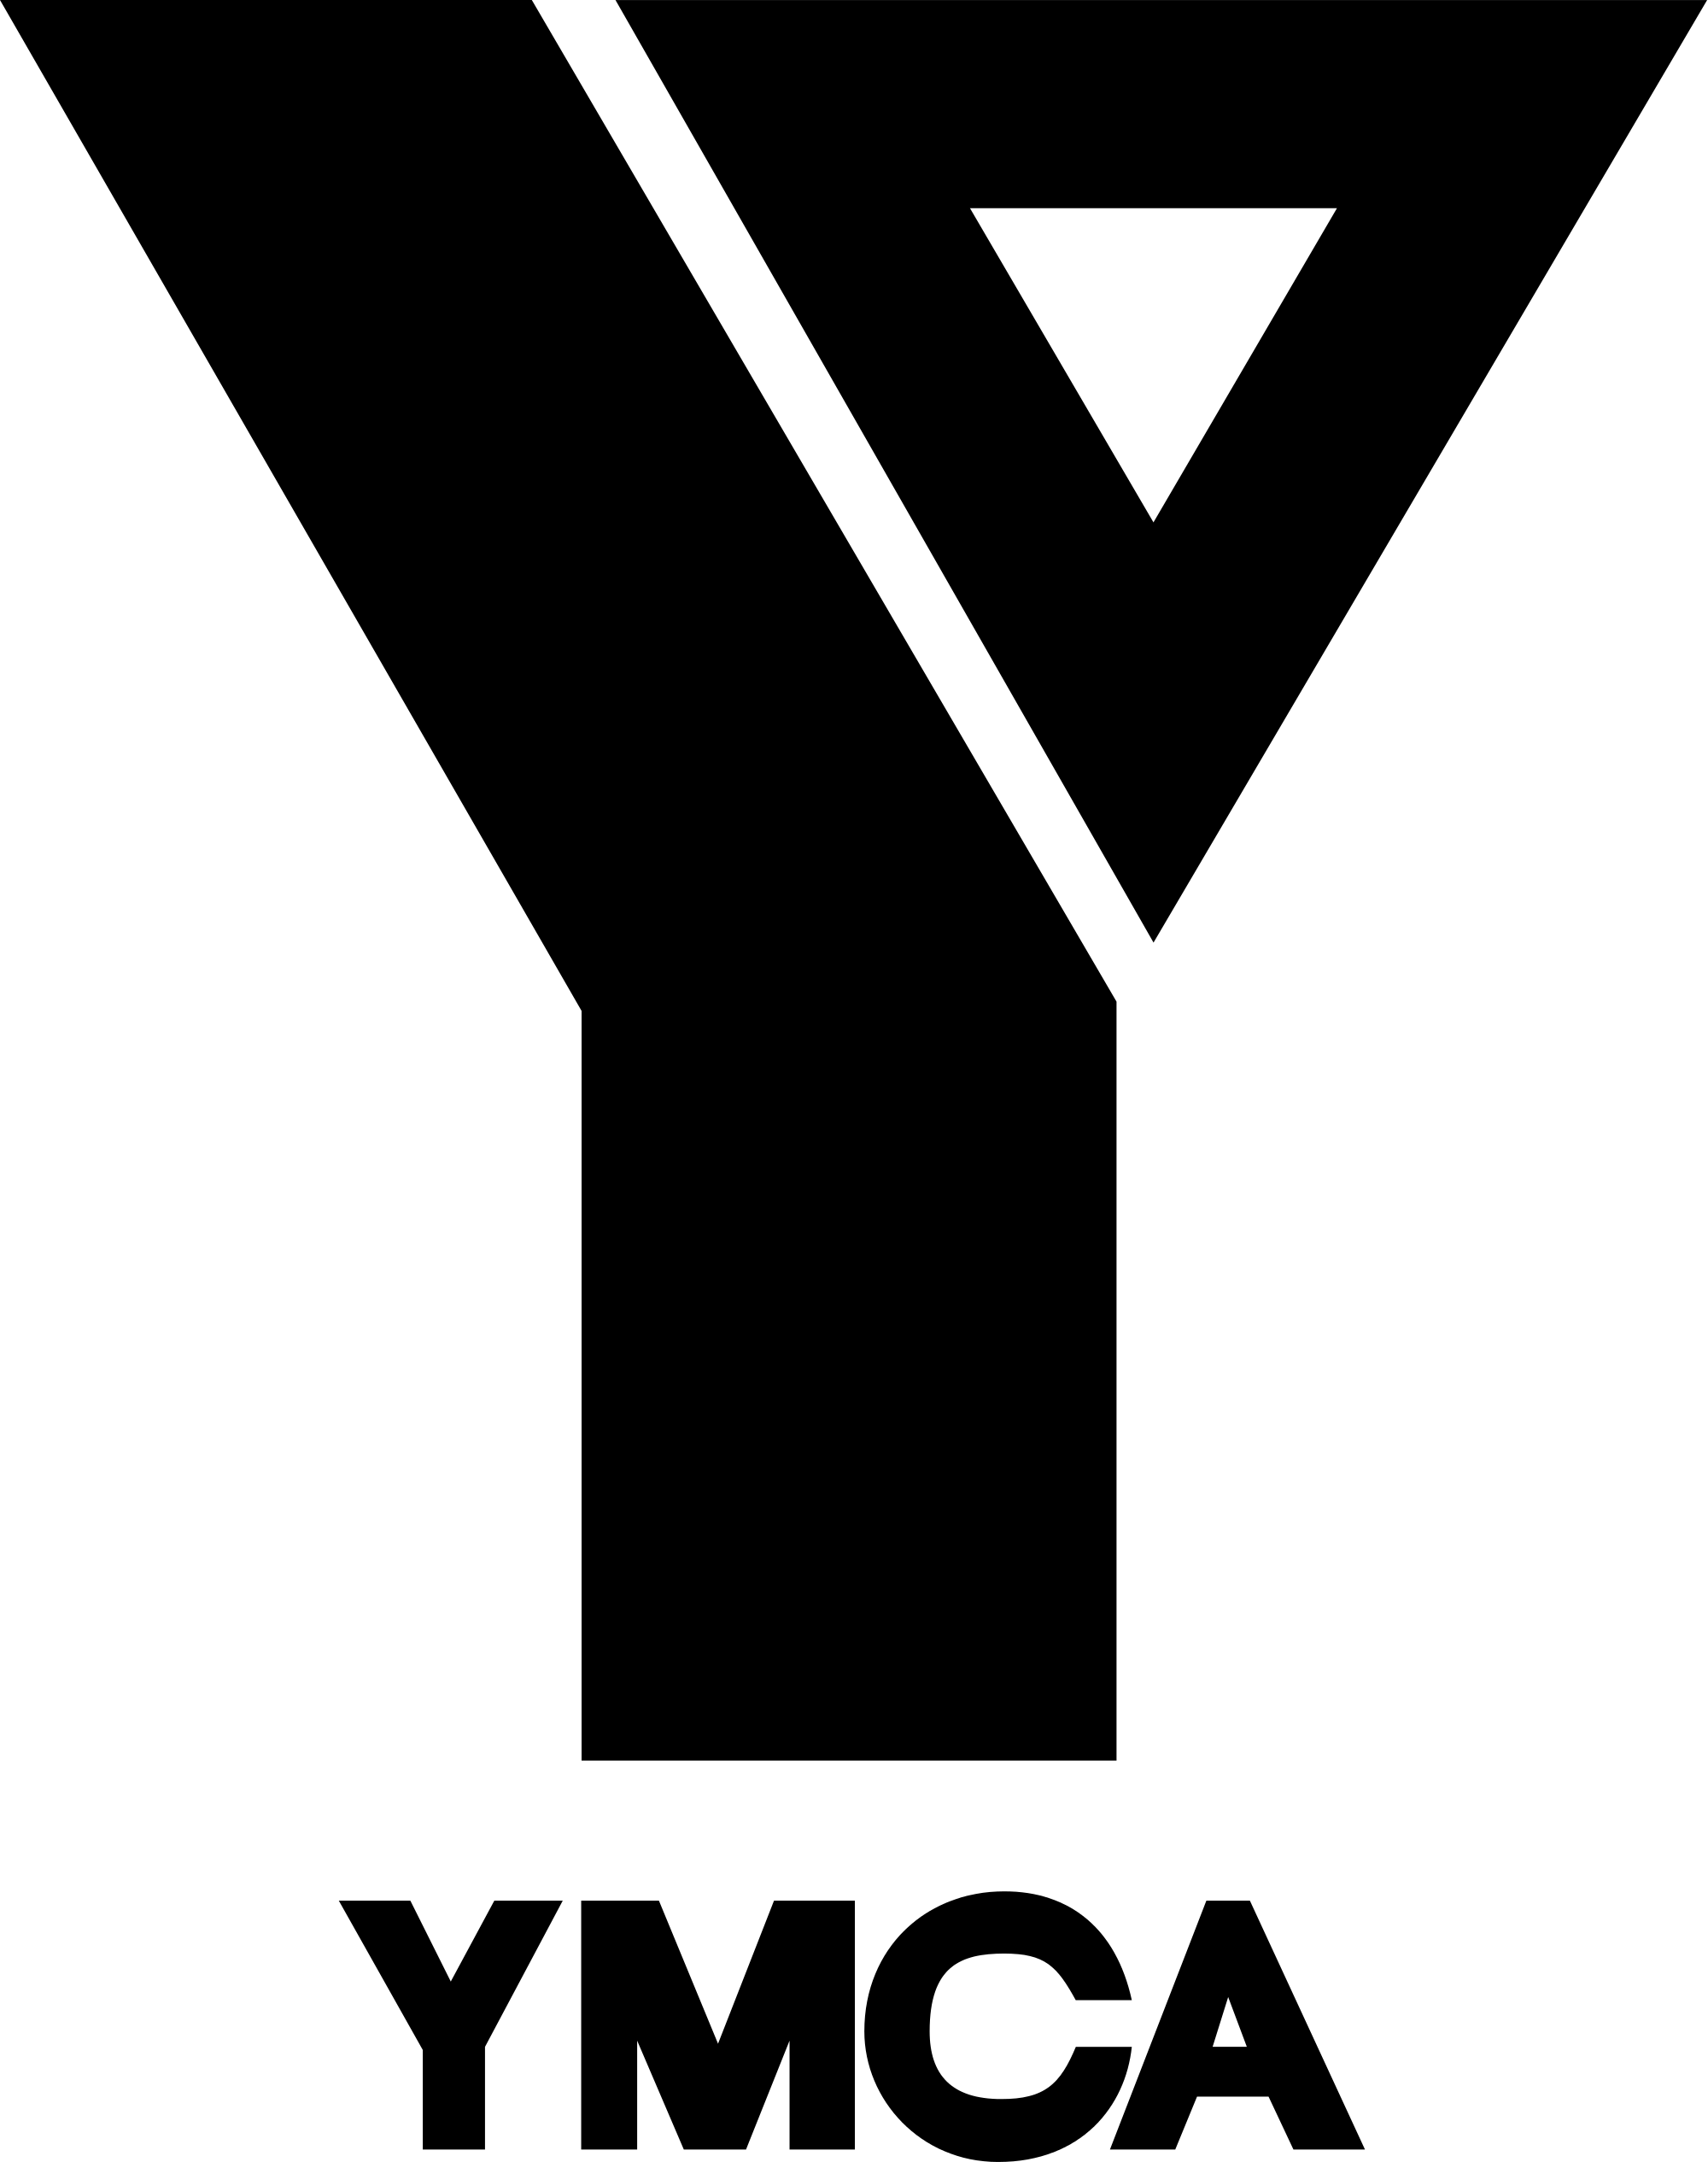 Ymca logo png. File svg wikimedia commons